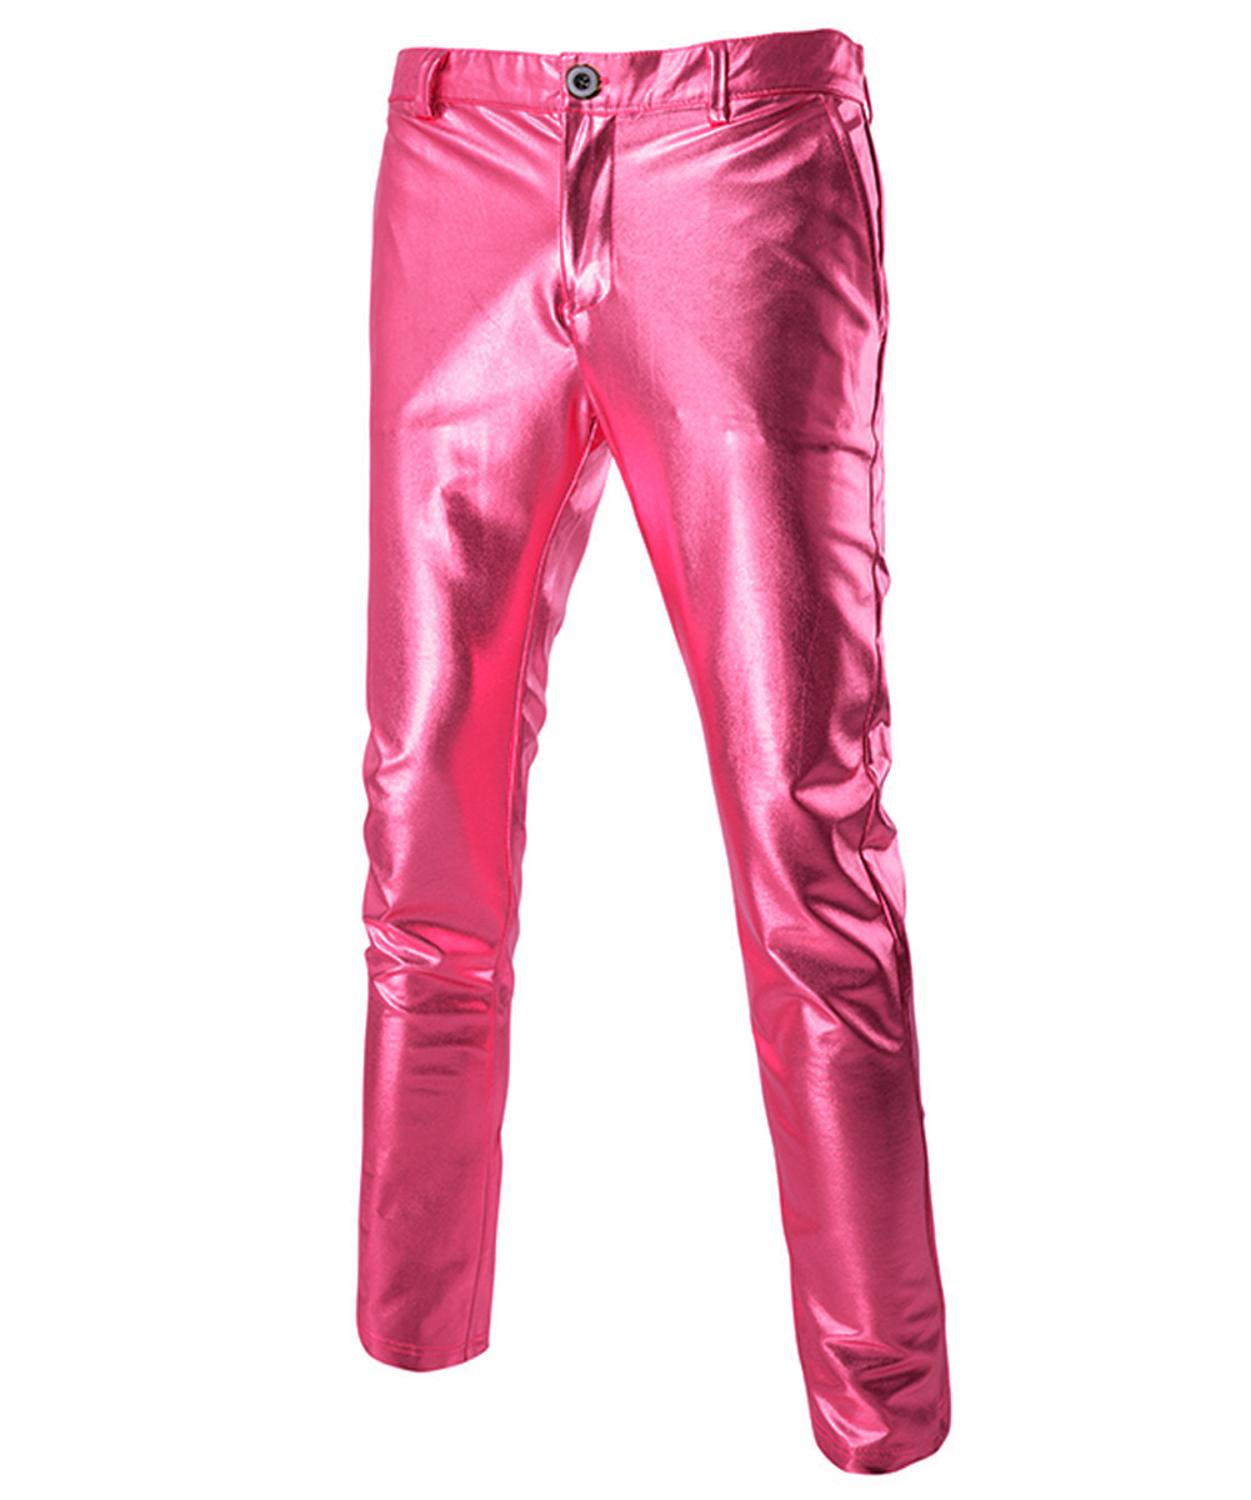 Men's Bright Pants Casual gilded slacks Wedding &Party trousers Slim Fashion Size M-4XL Slim  Out Wear Fashion Colorful Trousers